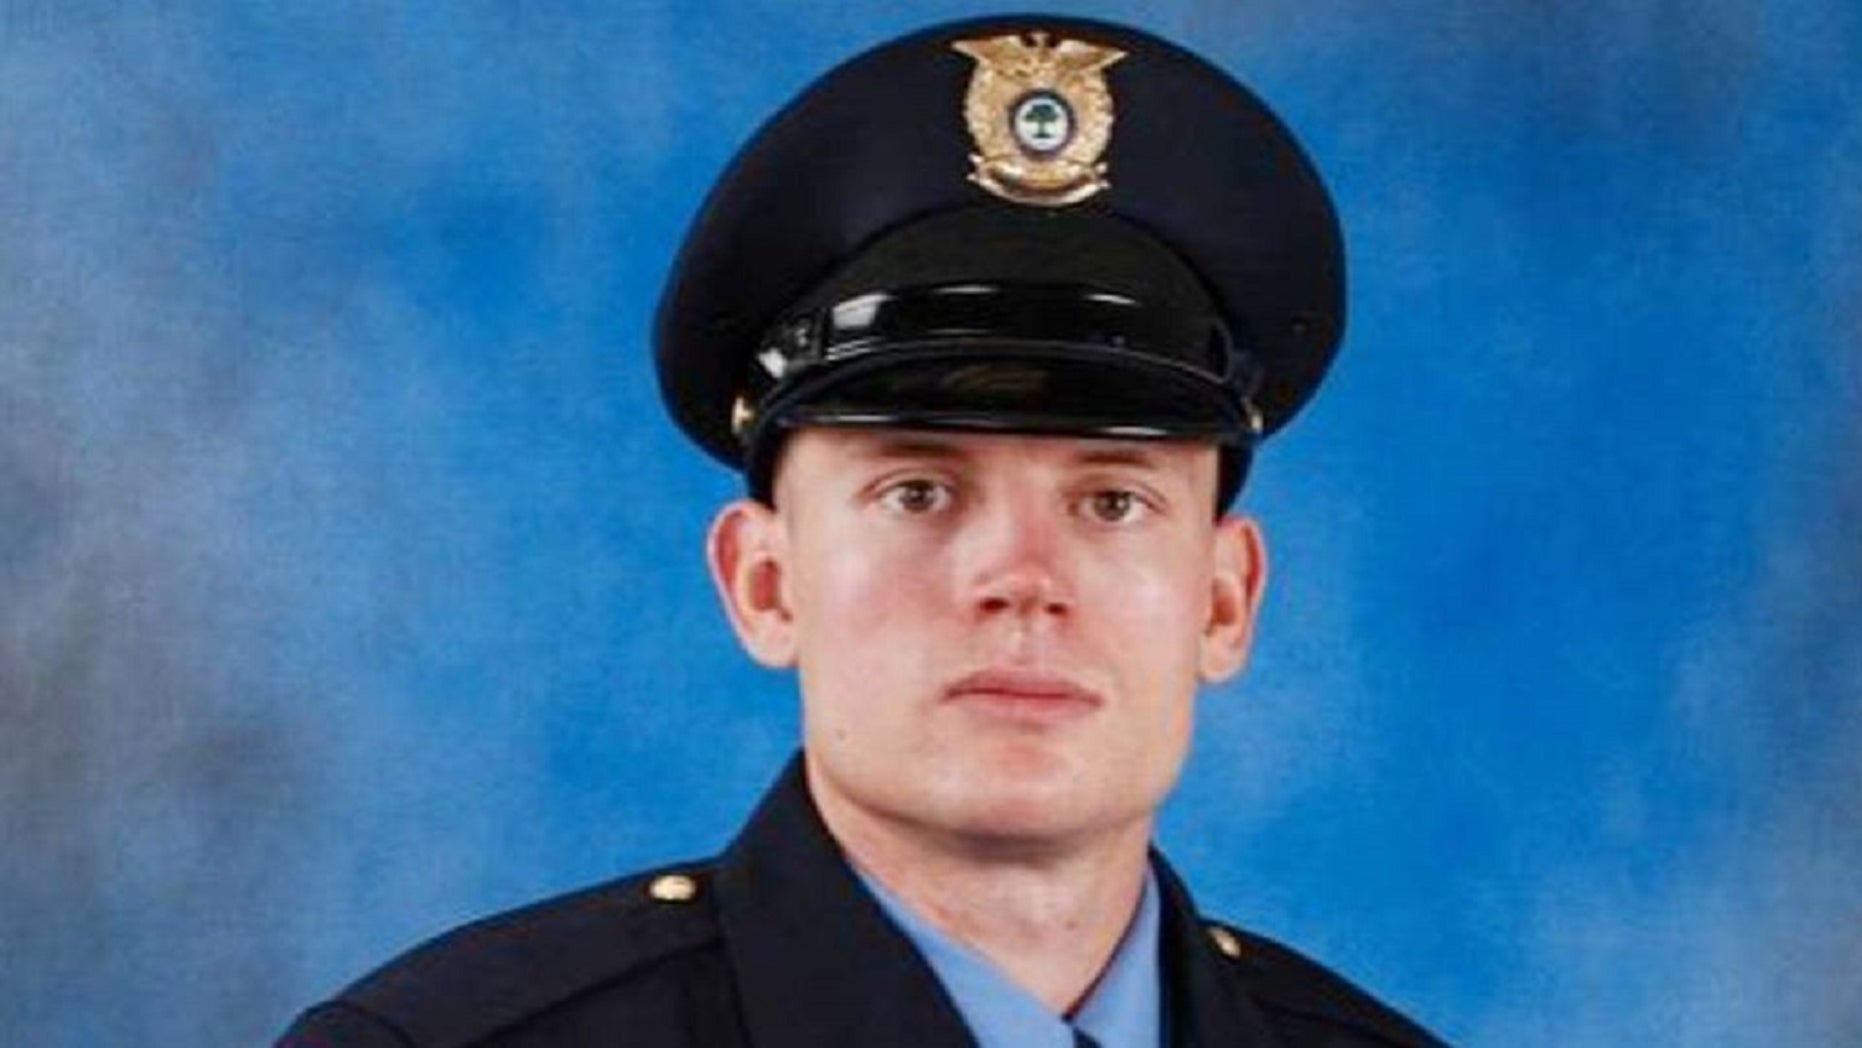 Raleigh police Officer Charles Ainsworth is said to be fighting for his life after being shot last week.